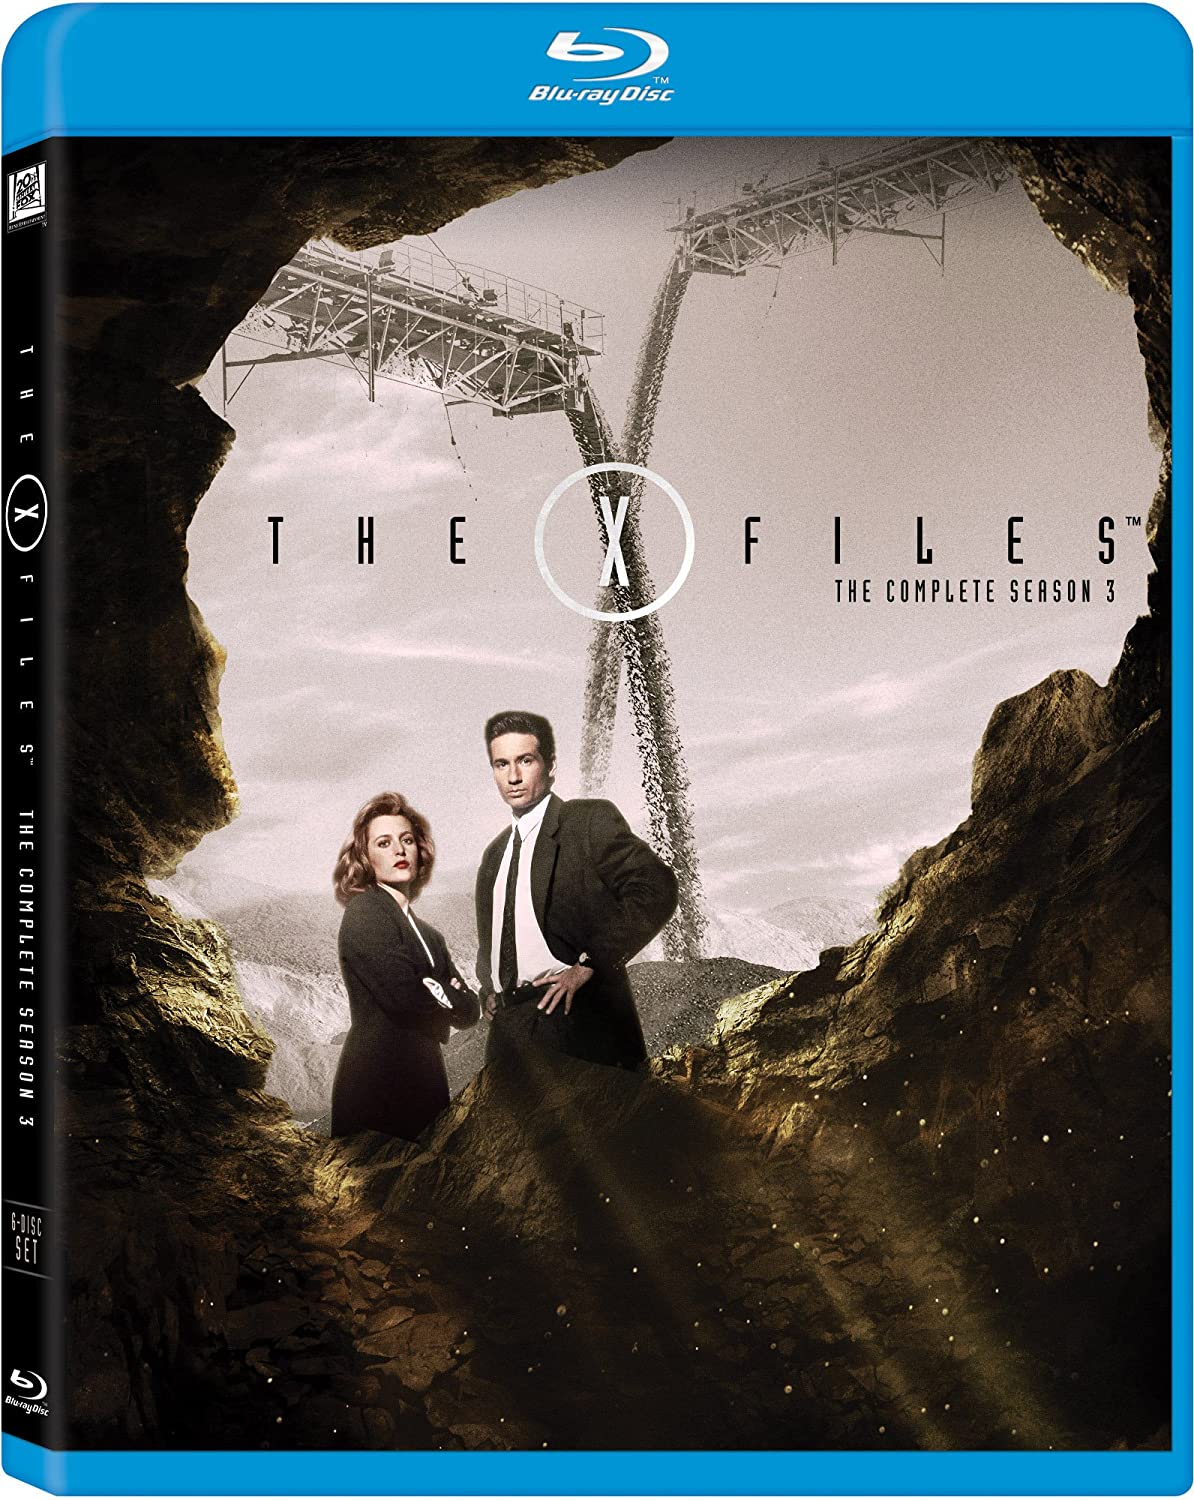 Amazon X Files The Complete Season 3 Blu Ray David Duchovny Gillian Anderson R W Goodwin Rob Bowman Kim Manners Nutter Movies TV